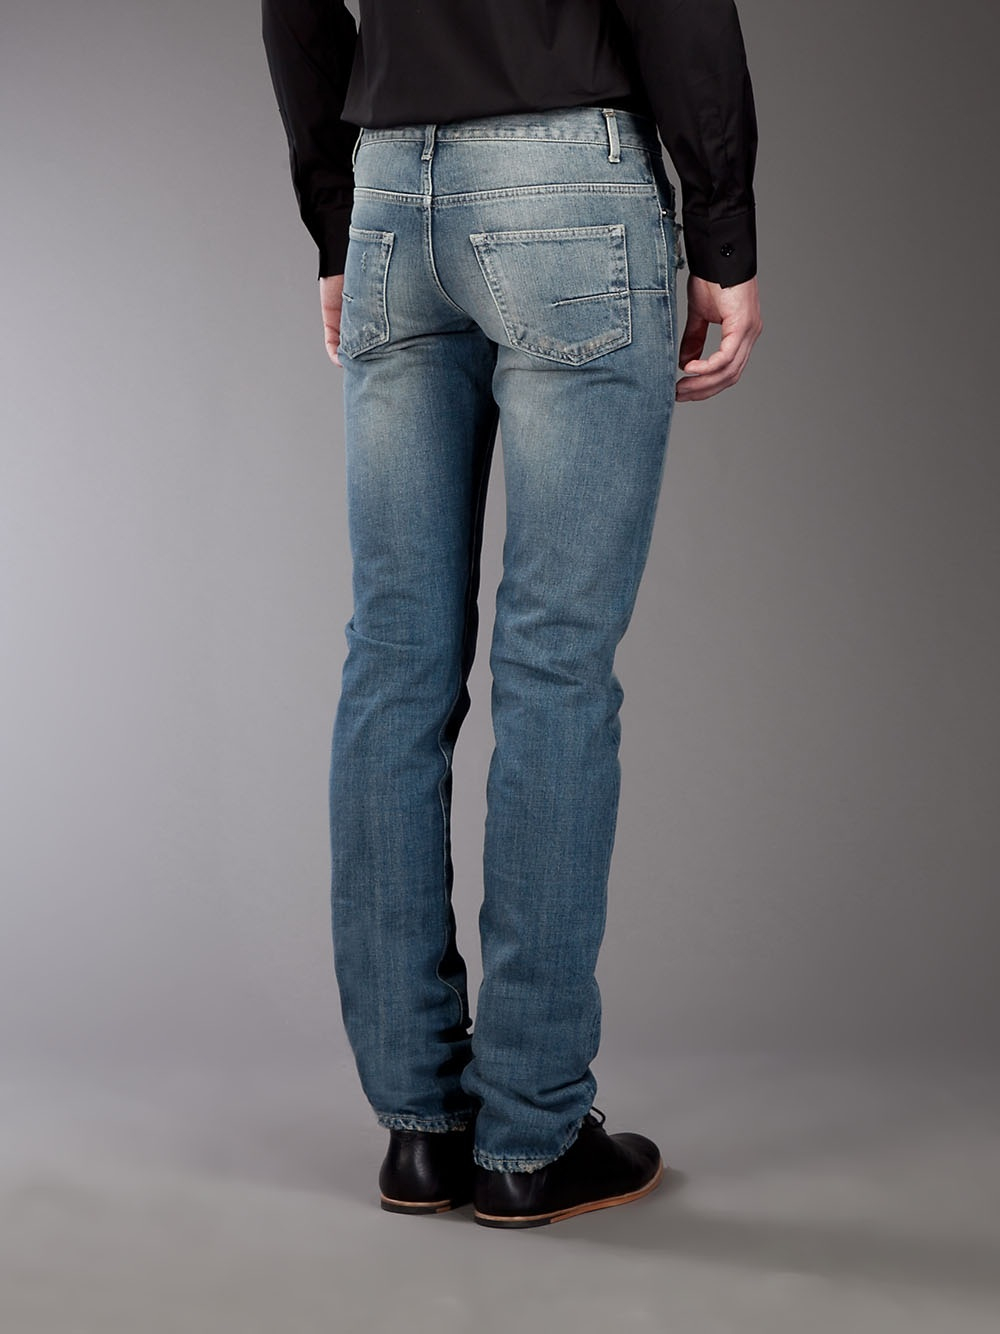 Lyst - Dior Homme Worn Effect Jeans in Blue for Men - photo#27